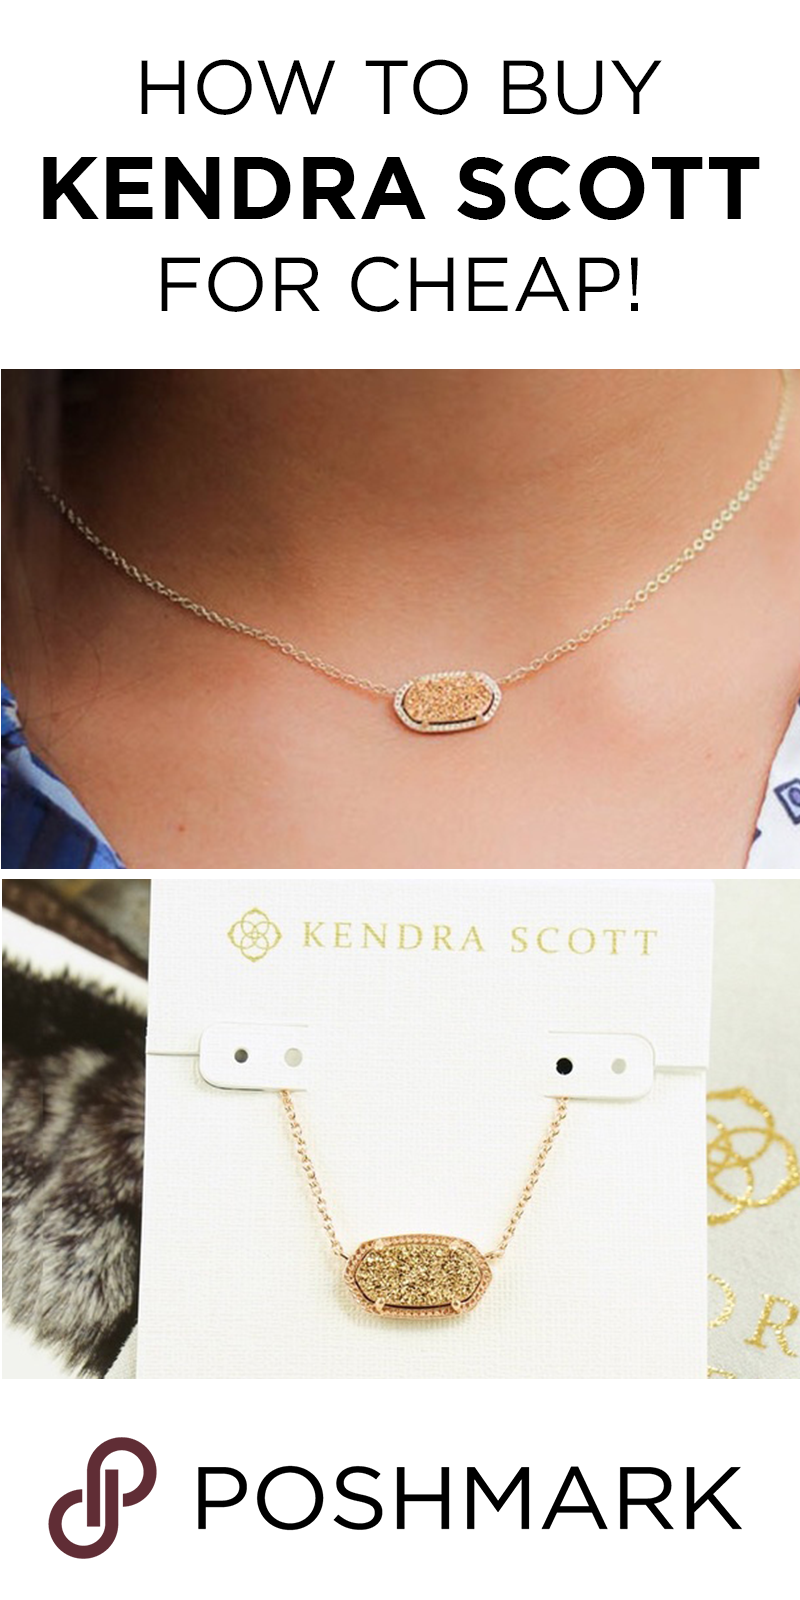 Get Kendra Scott Necklaces For Up To 70 Off Download The Free Poshmark App To Shop Kendra Scott Necklace Fashion Jewelry Necklace